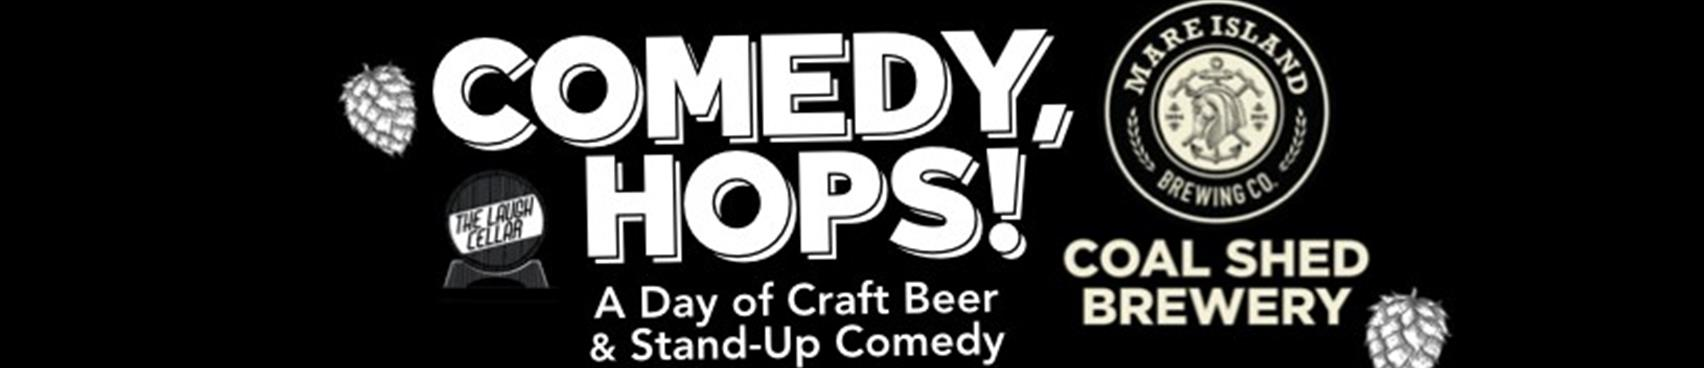 Purchase Tickets to Comedy, Hops! A Day of Craft Beer & Stand-Up Comedy at The Laugh Cellar on CellarPass